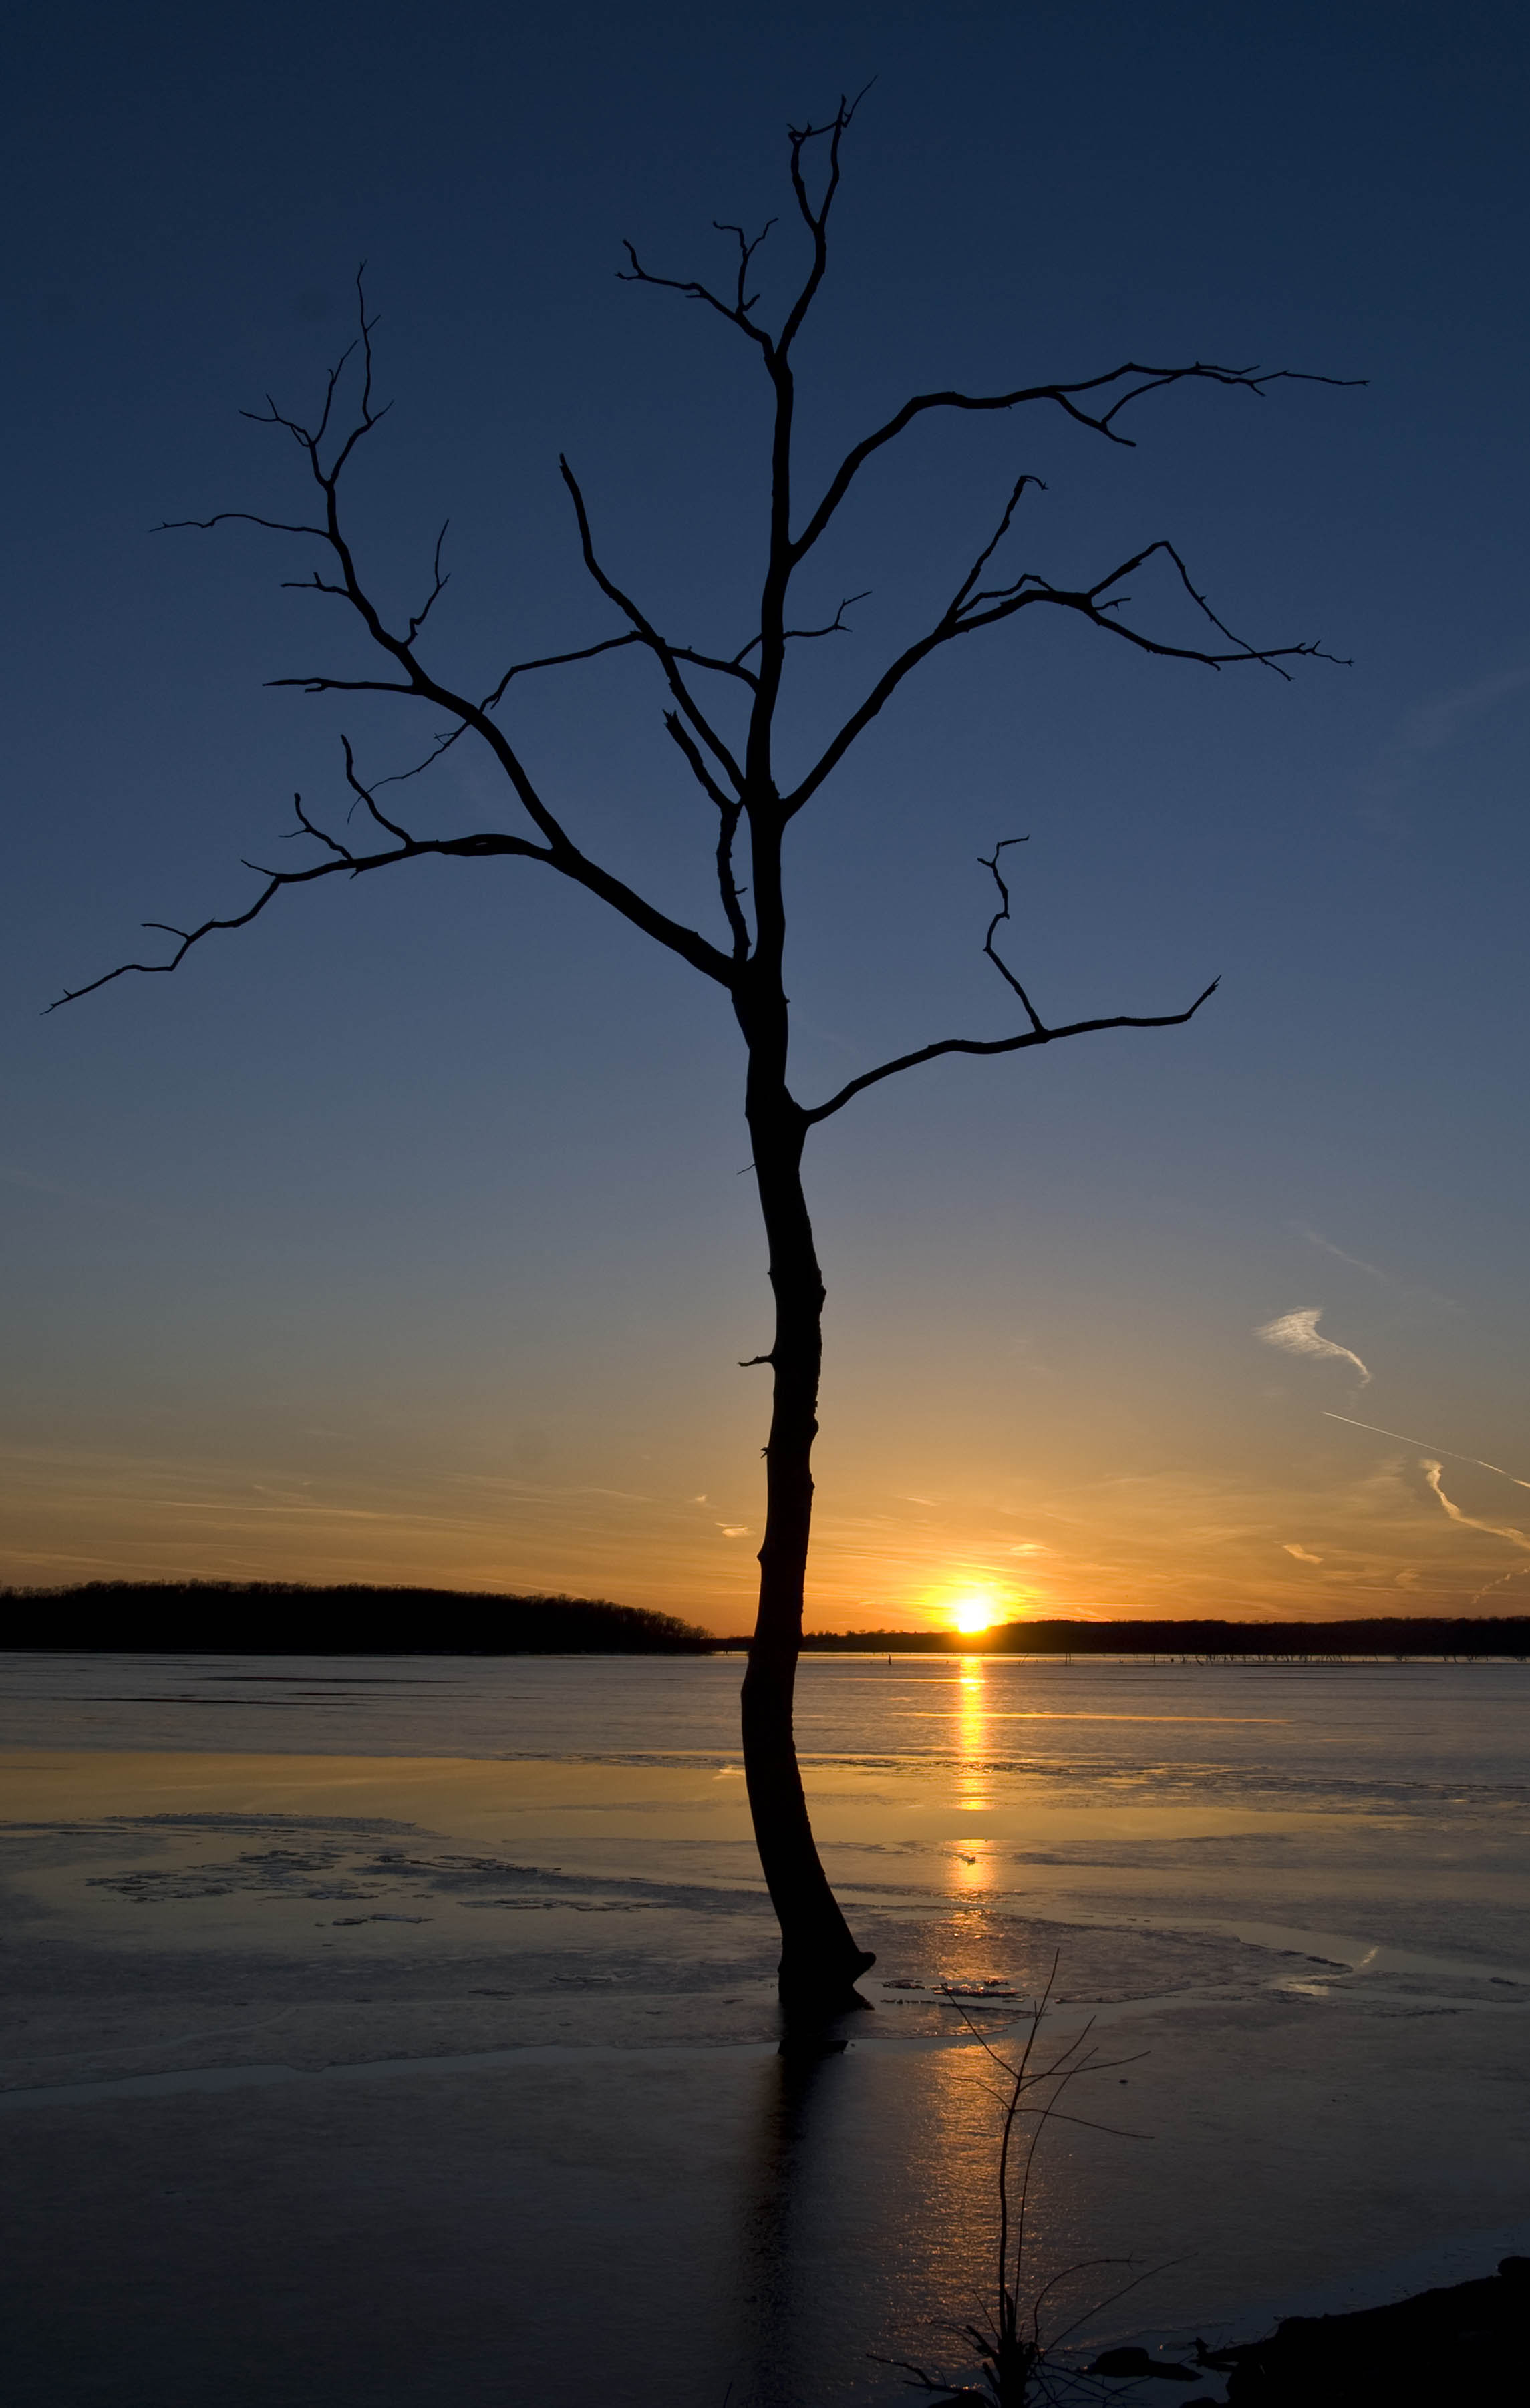 USA lonely tree at sunset low res.jpg